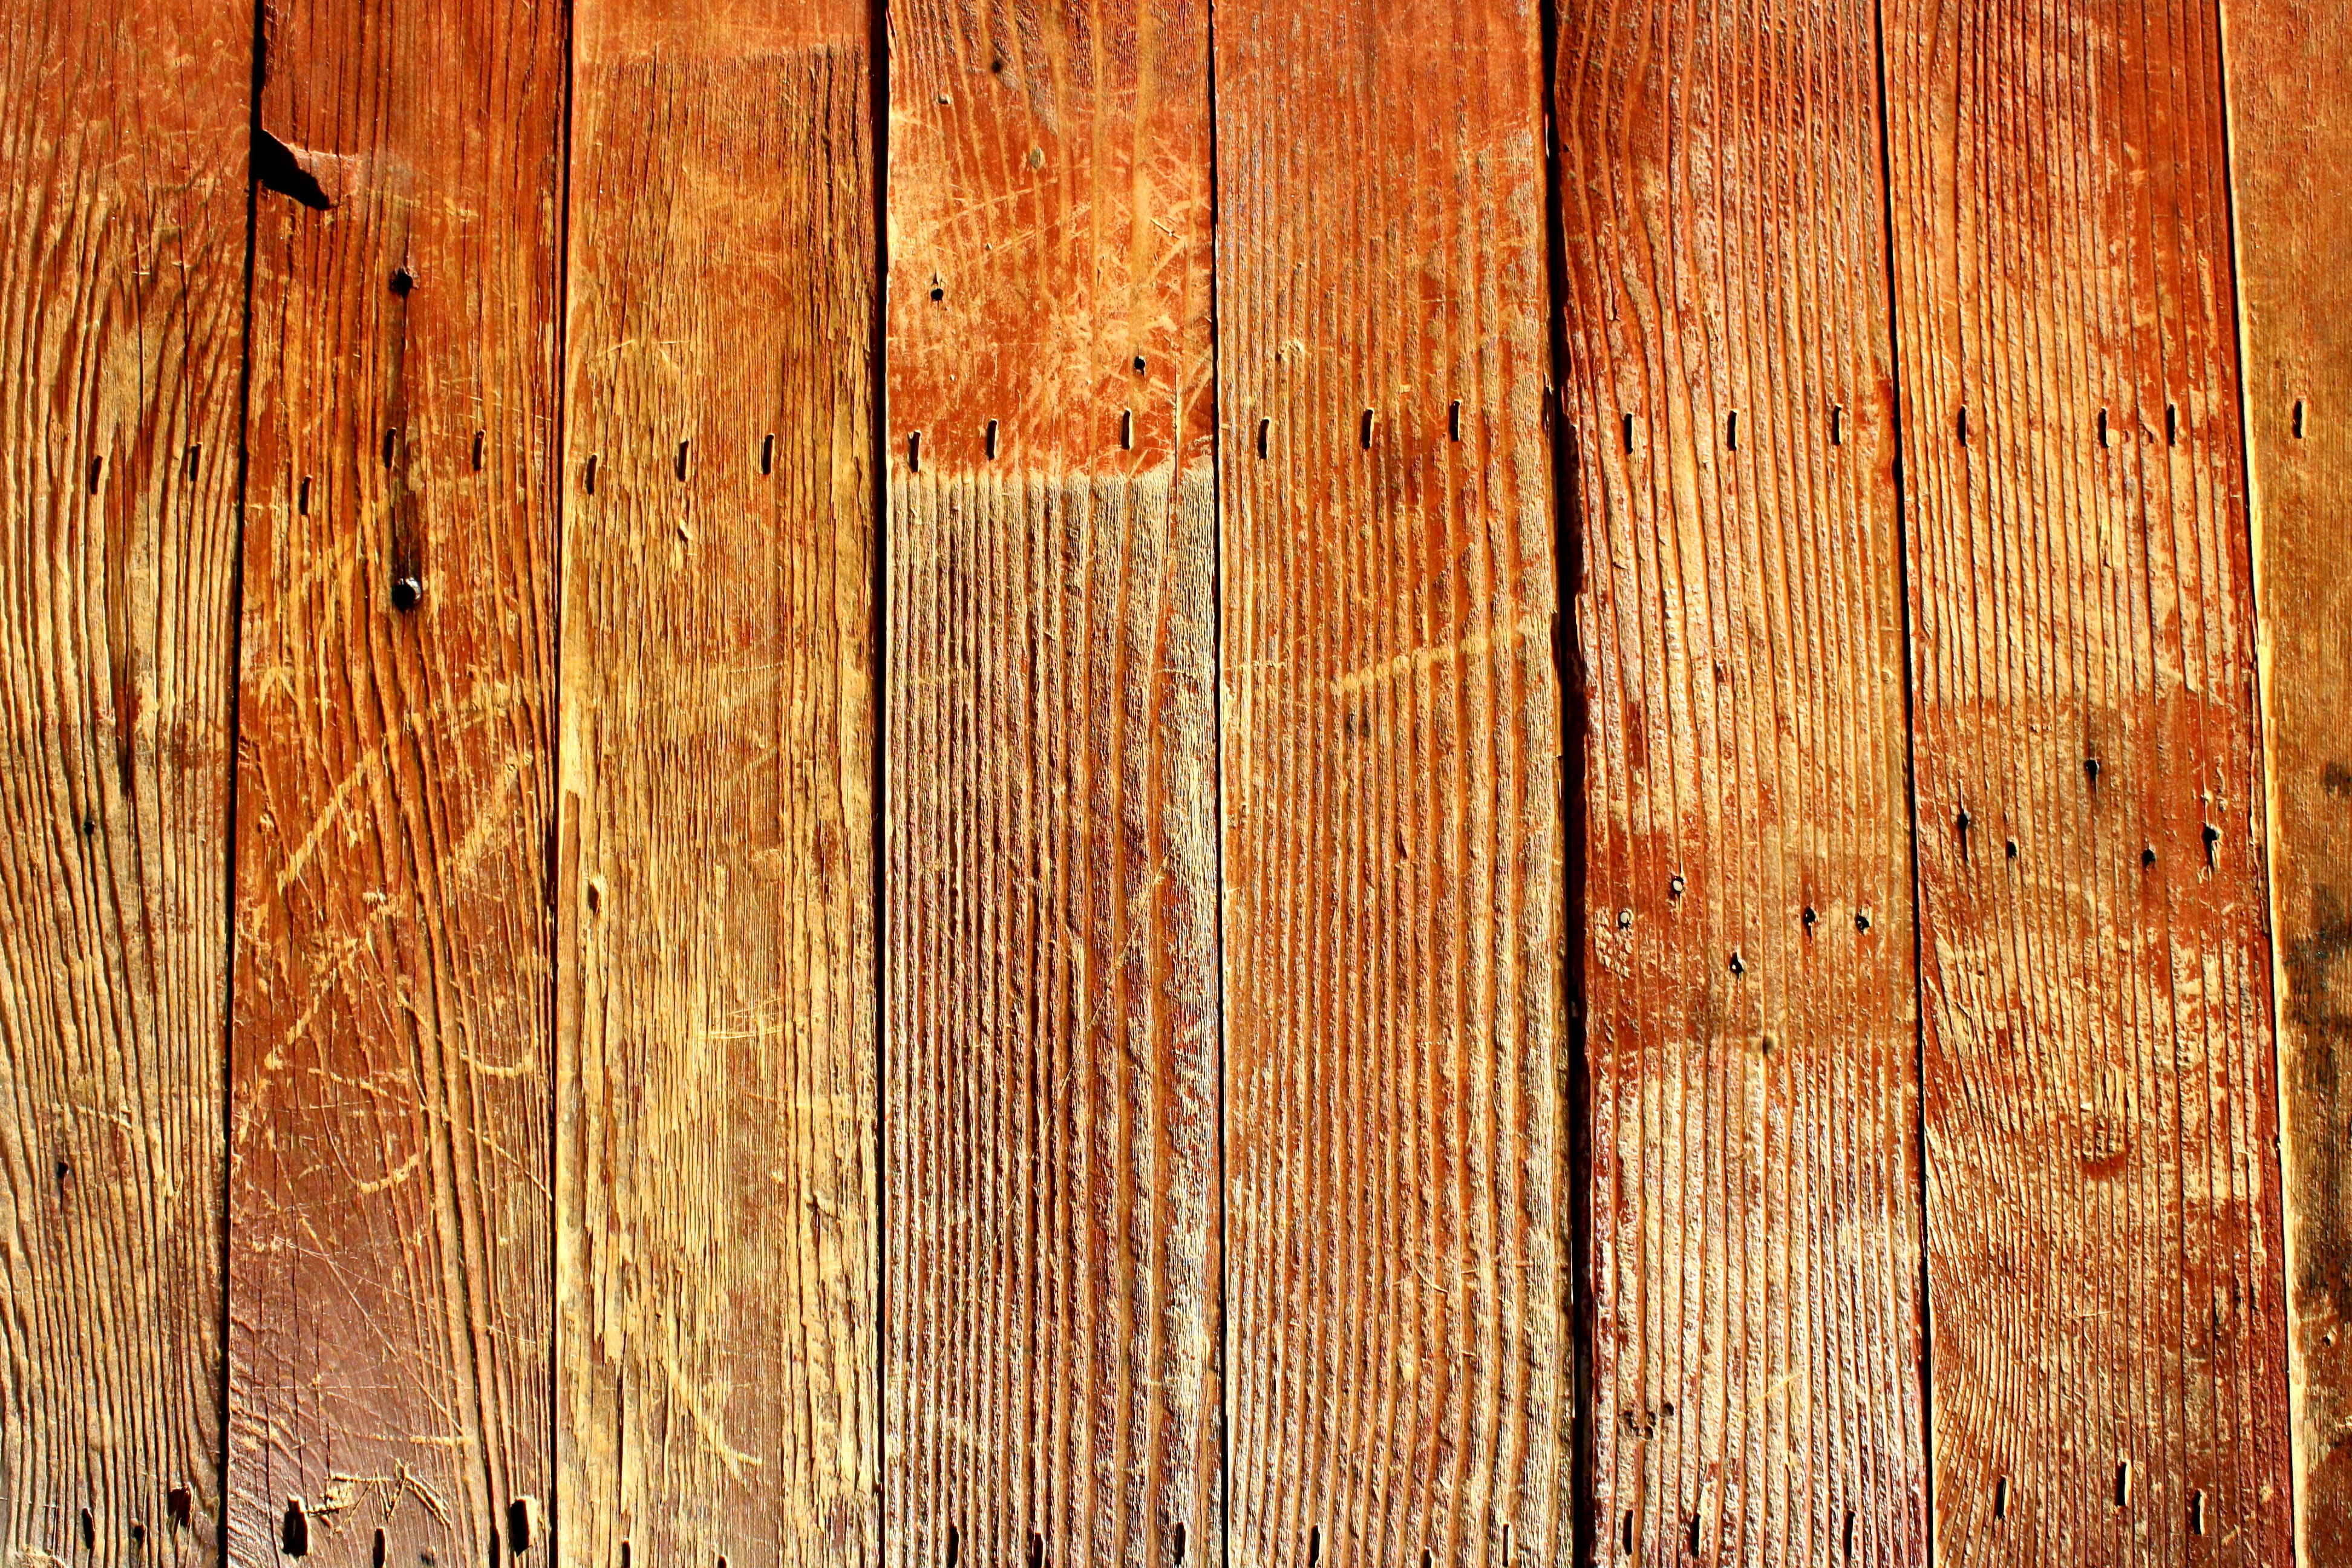 Antique Wood Boards Scratched Old Wooden Boards 3888x2592